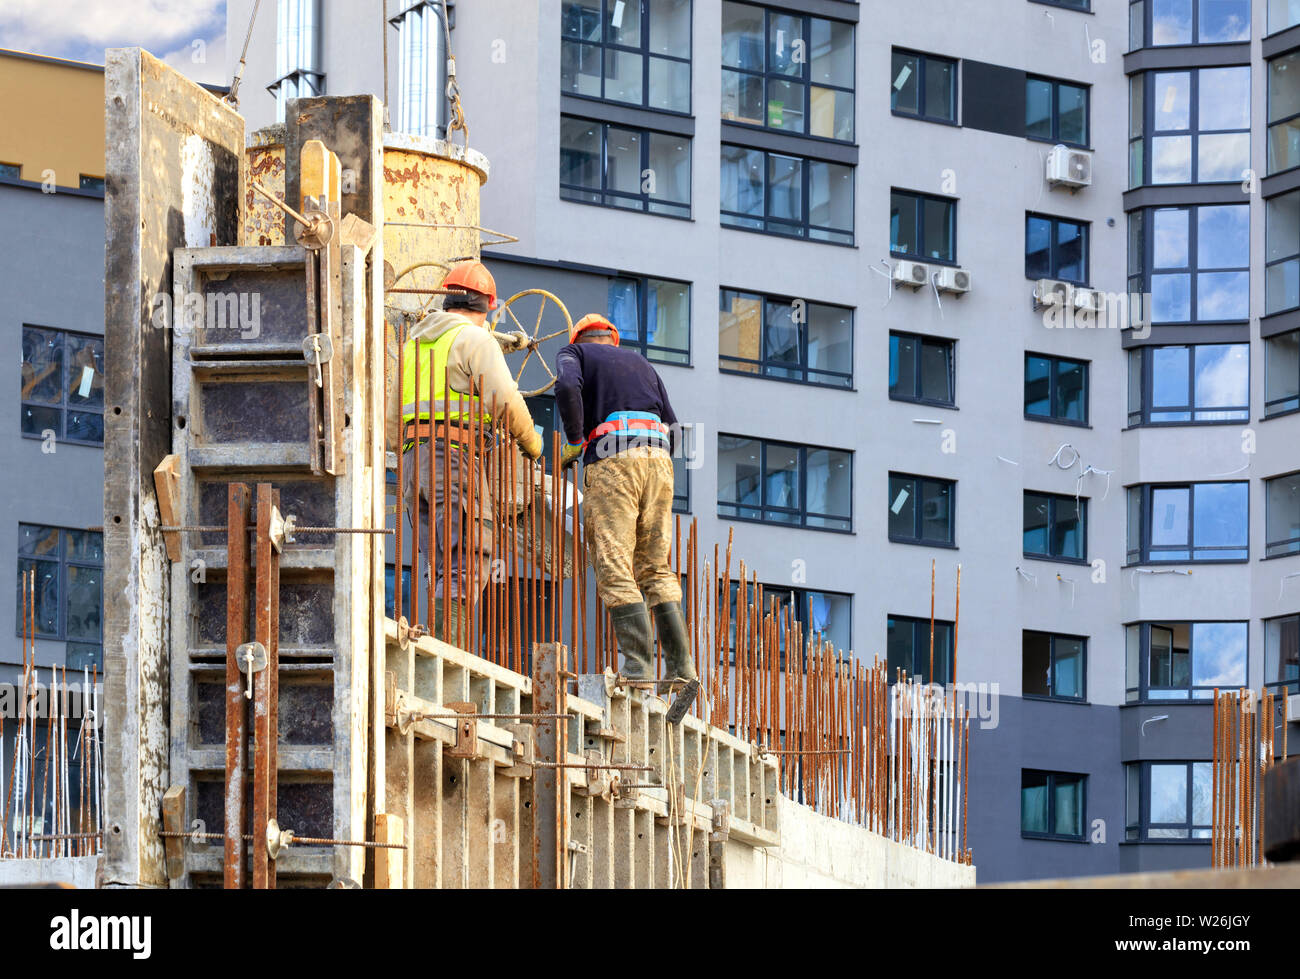 Workers poured concrete in the formwork of the walls on the construction of the new house against the background of a modern residential building. Stock Photo